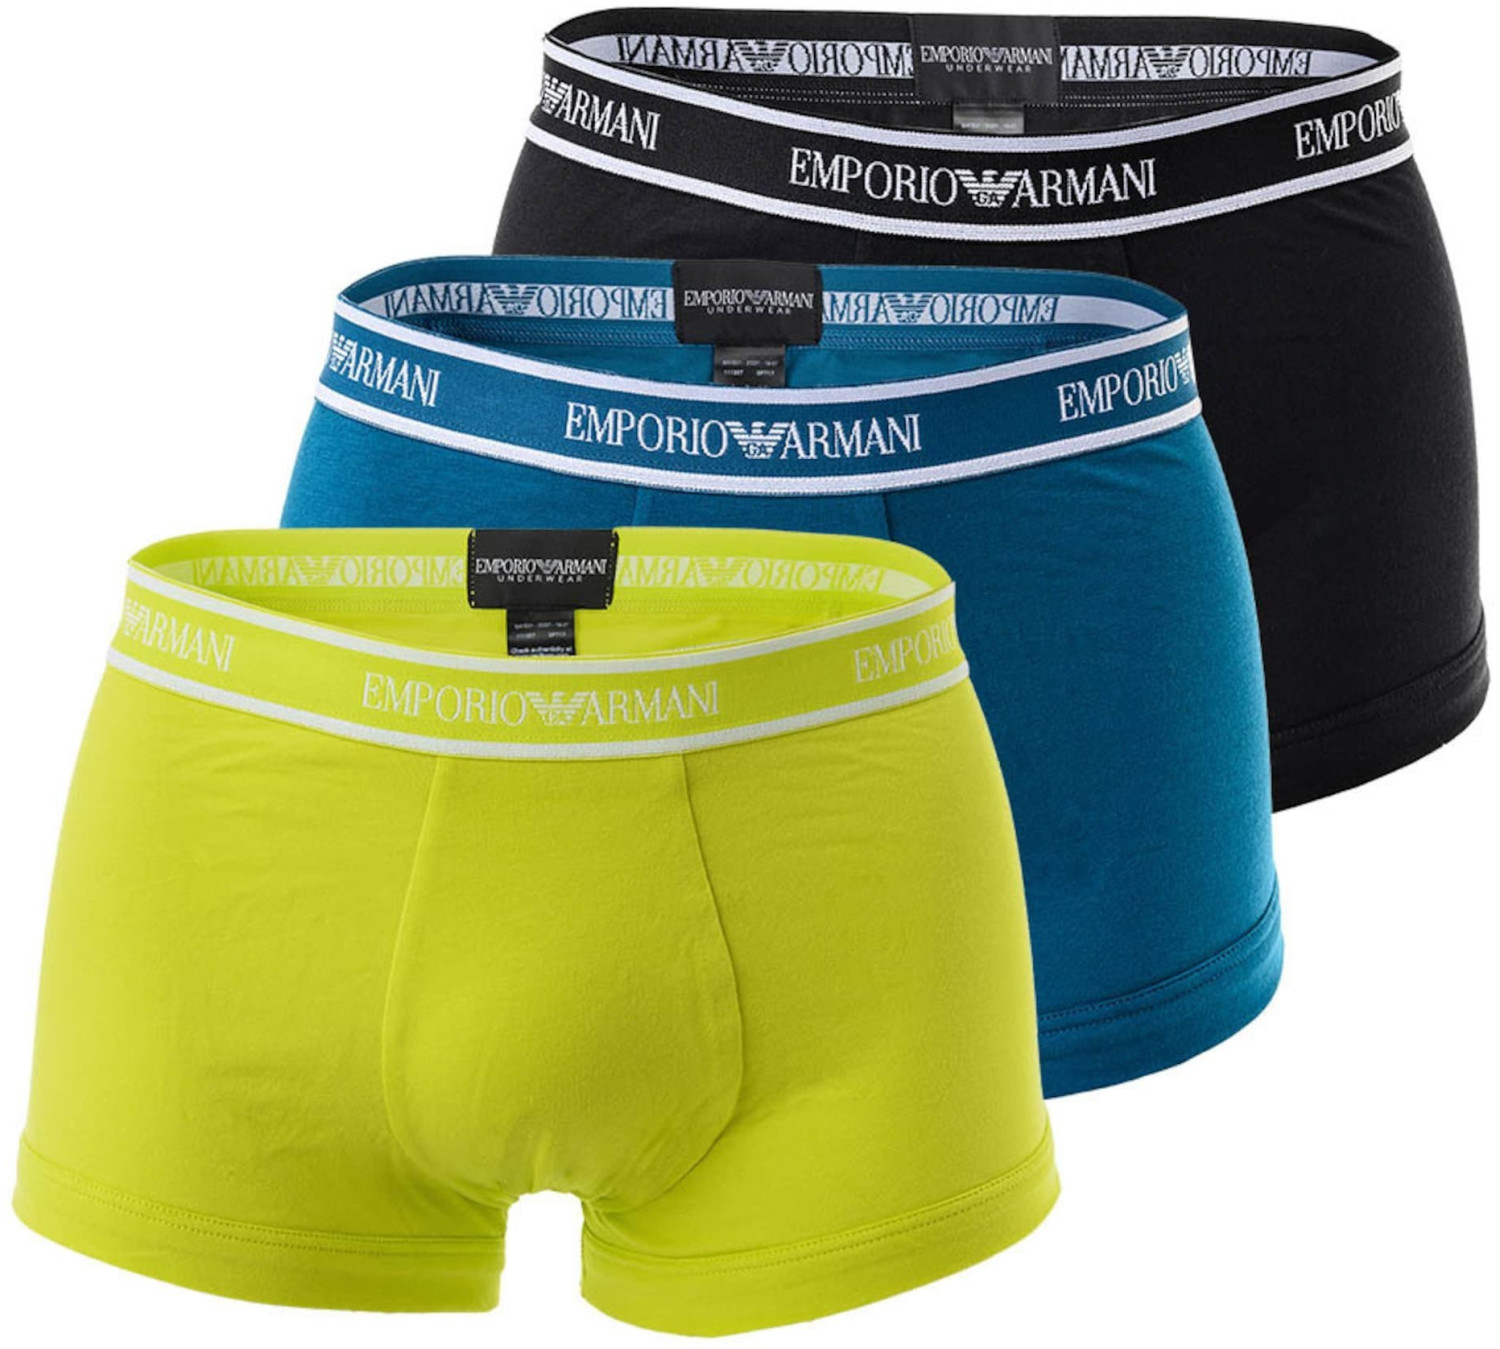 Image of Emporio Armani 3-Pack Trunks (111357-0P717-08960)